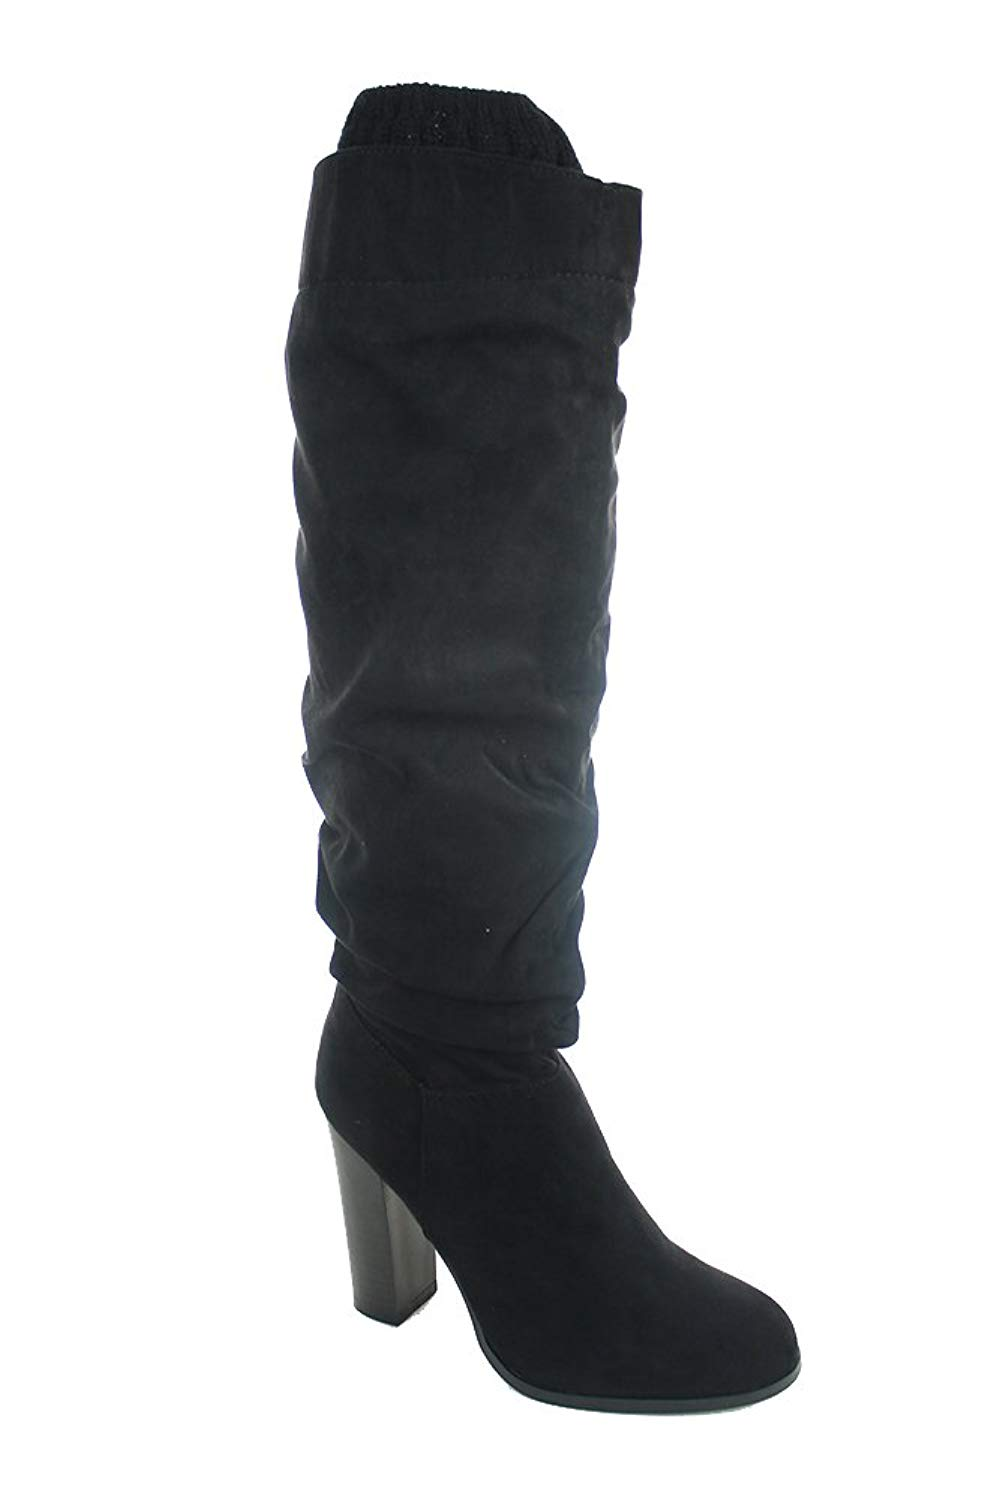 1968435811b Qupid Womens Faux Suede Knee High Chunky Heel Sweater Riding Boot Black 8